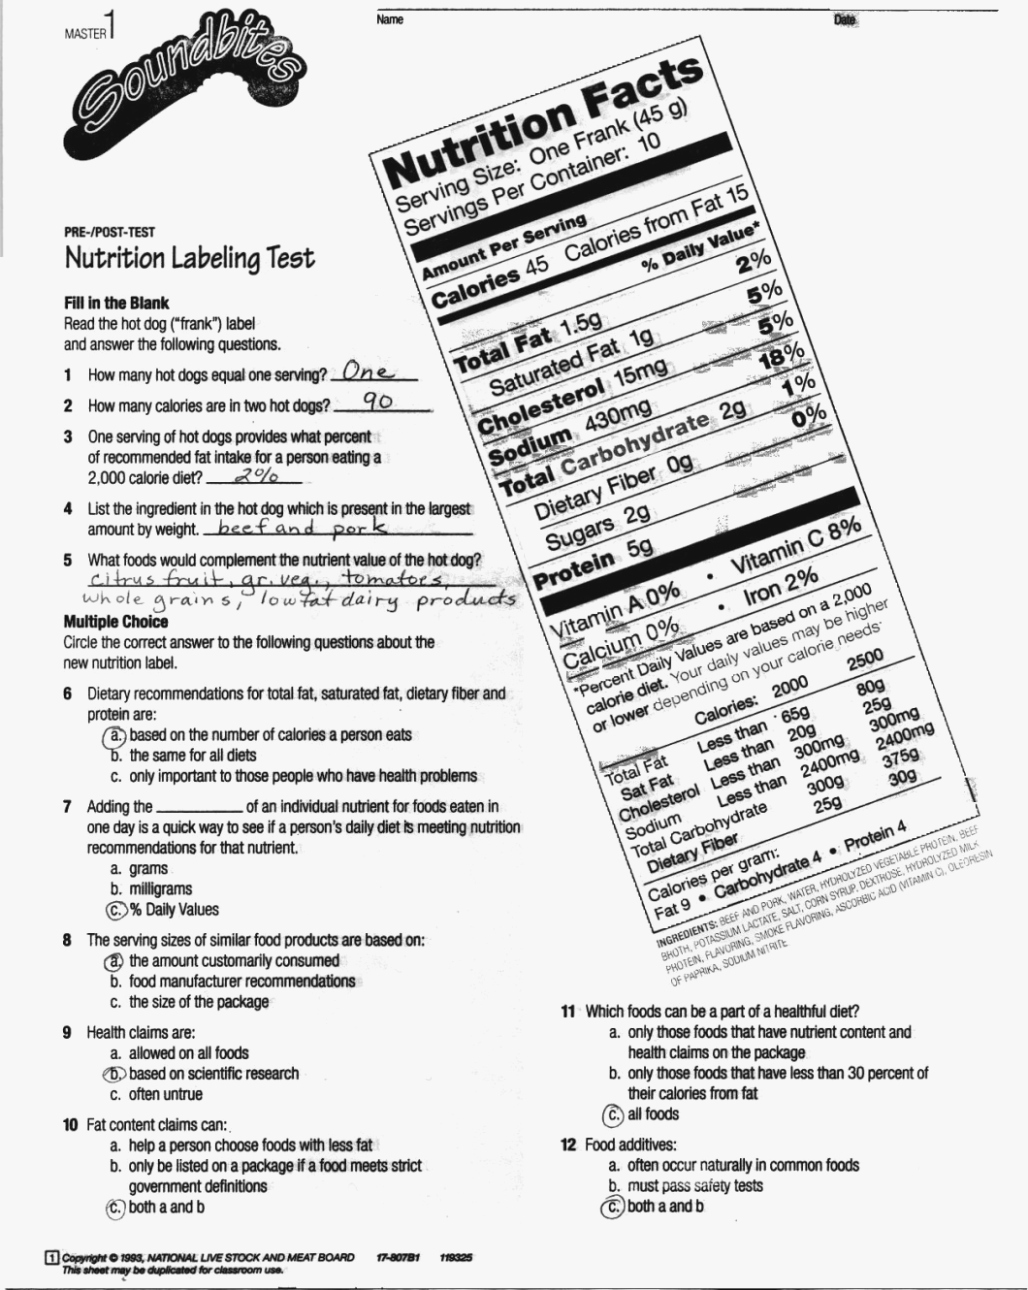 Nutrition Label Worksheet Answer Fresh Nutrition Label Worksheet Answer Key Pdf – Blog Dandk